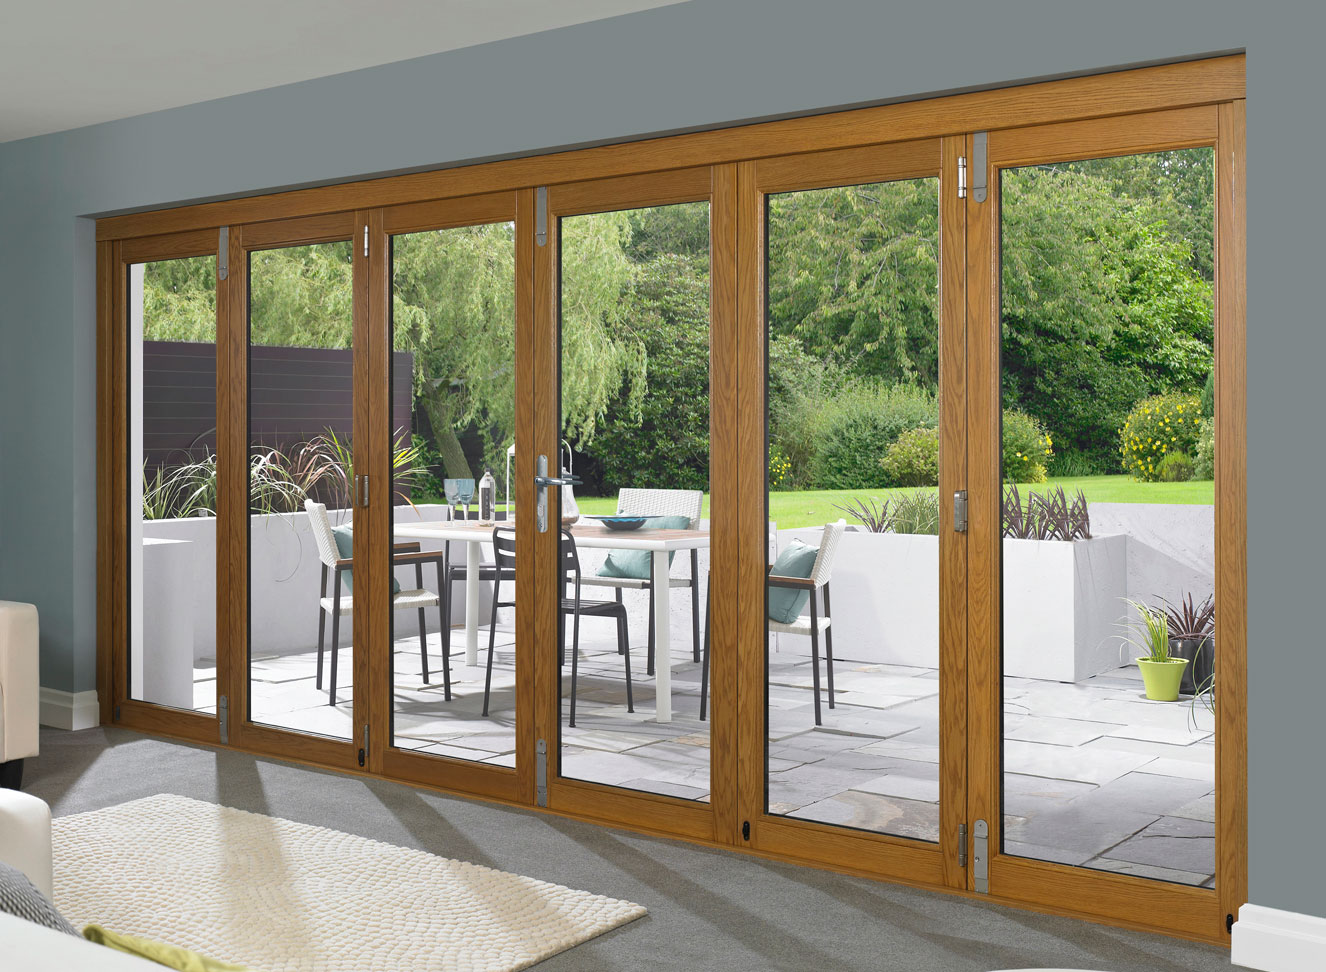 Faltschiebetür Terrasse Bi Folding Patio Doors Designs Options To Beautify Your